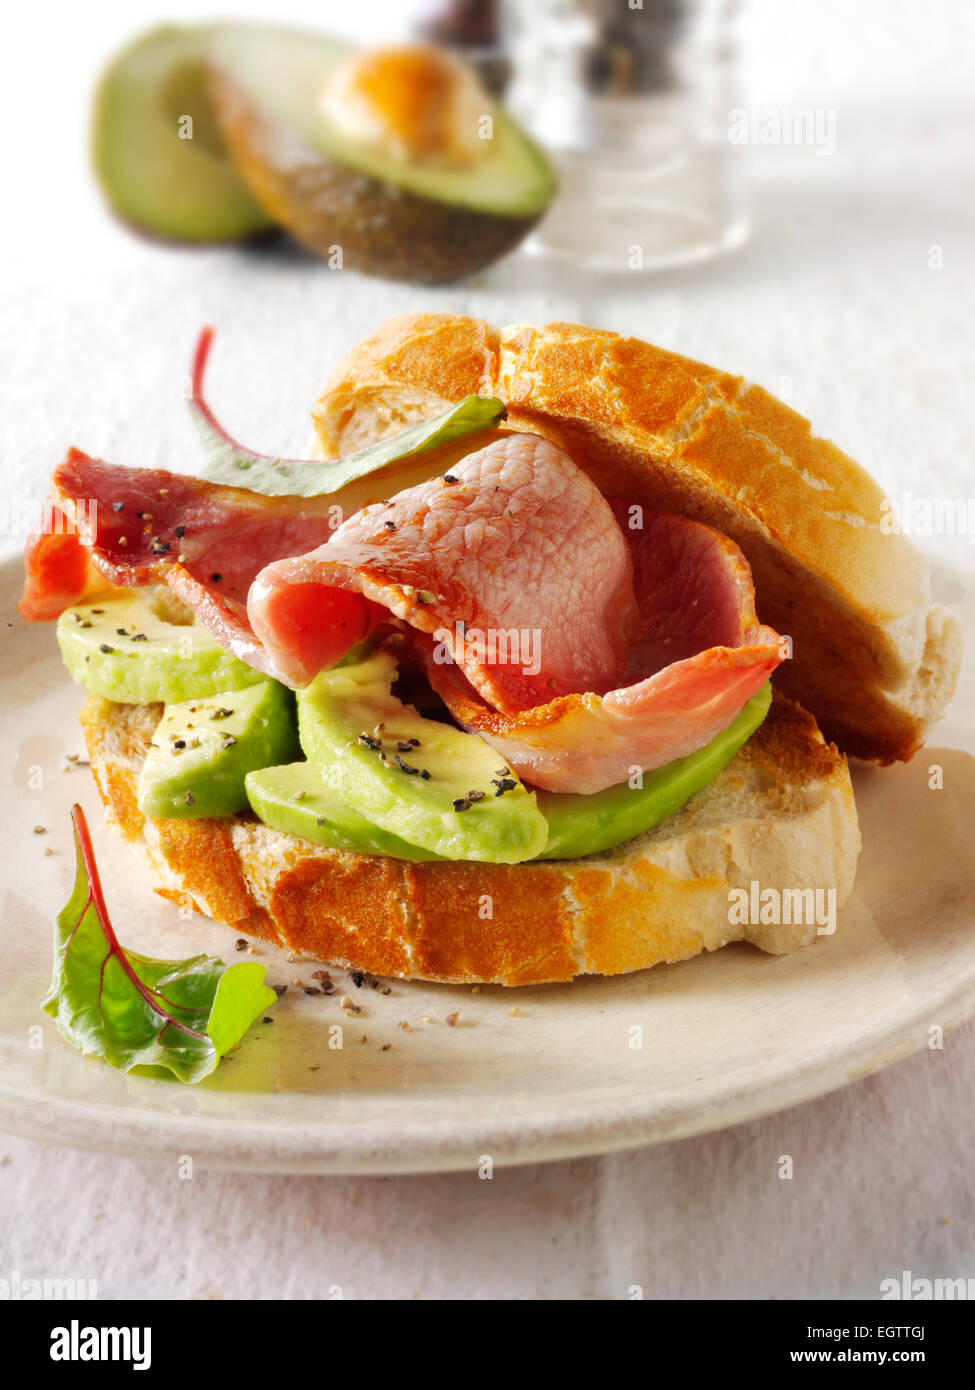 Bacon and avacado sandwich Stock Photo